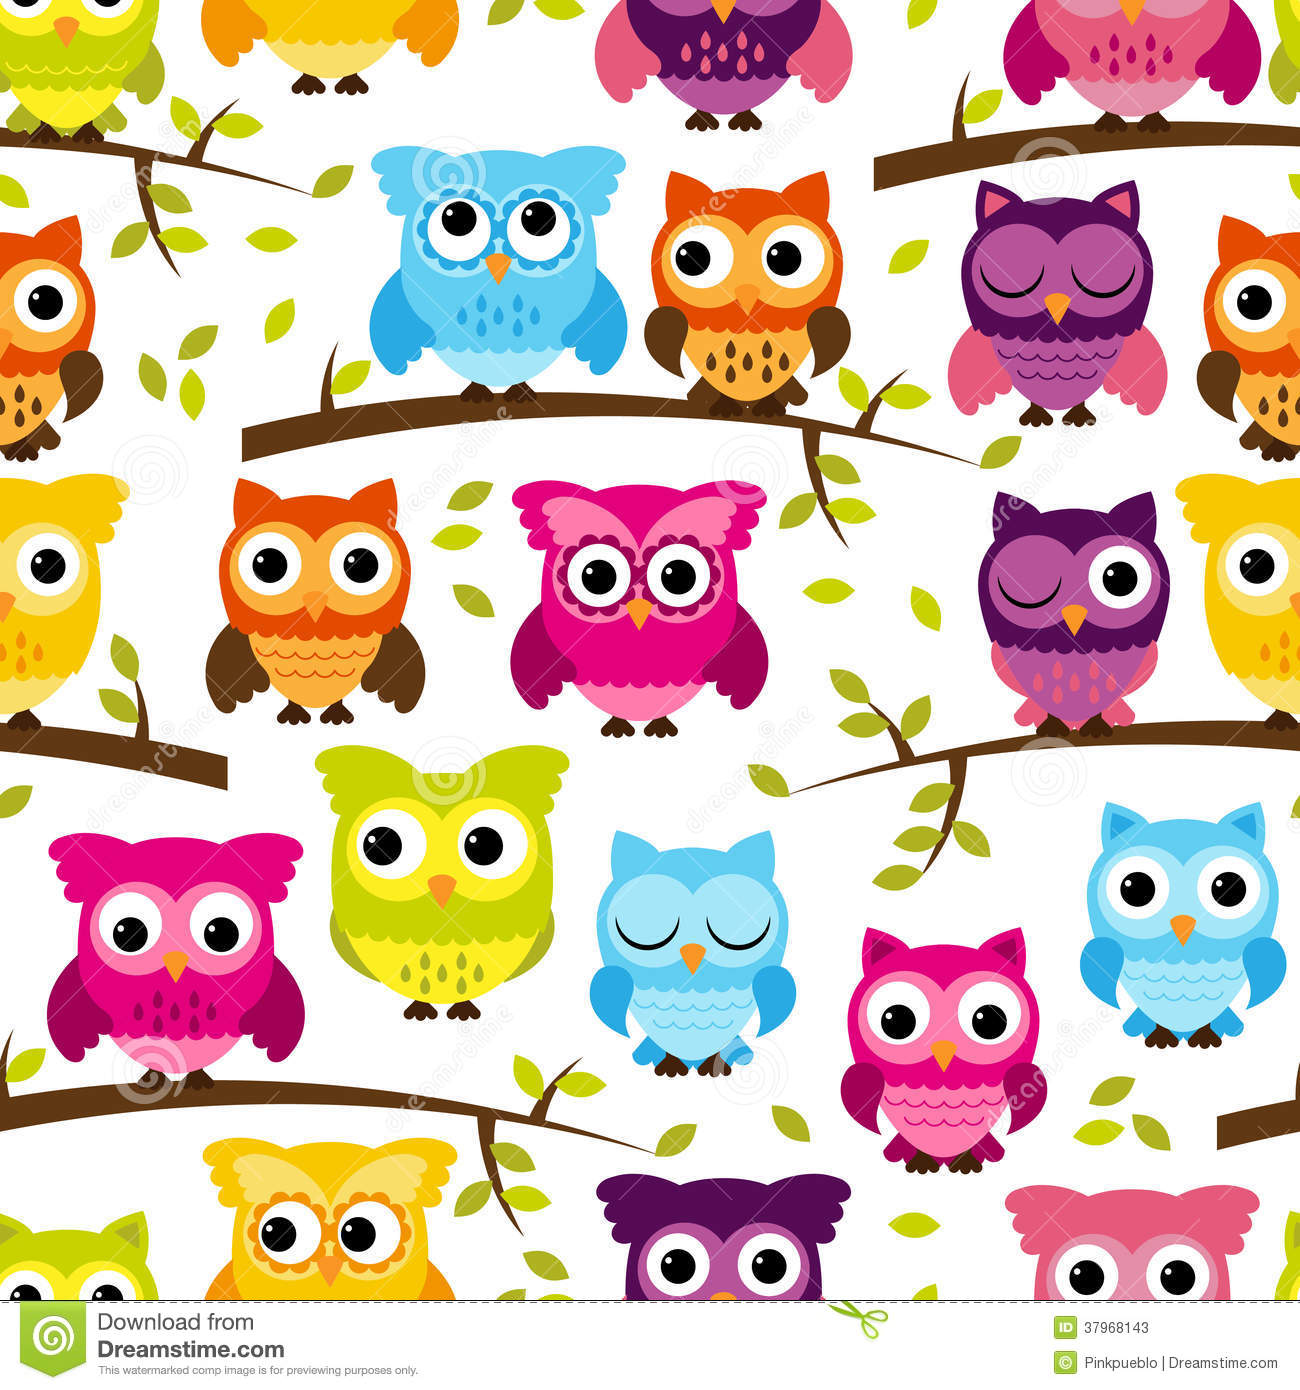 Vector Incons Til Y De Tileable Owl Background Pattern Con Las Hojas